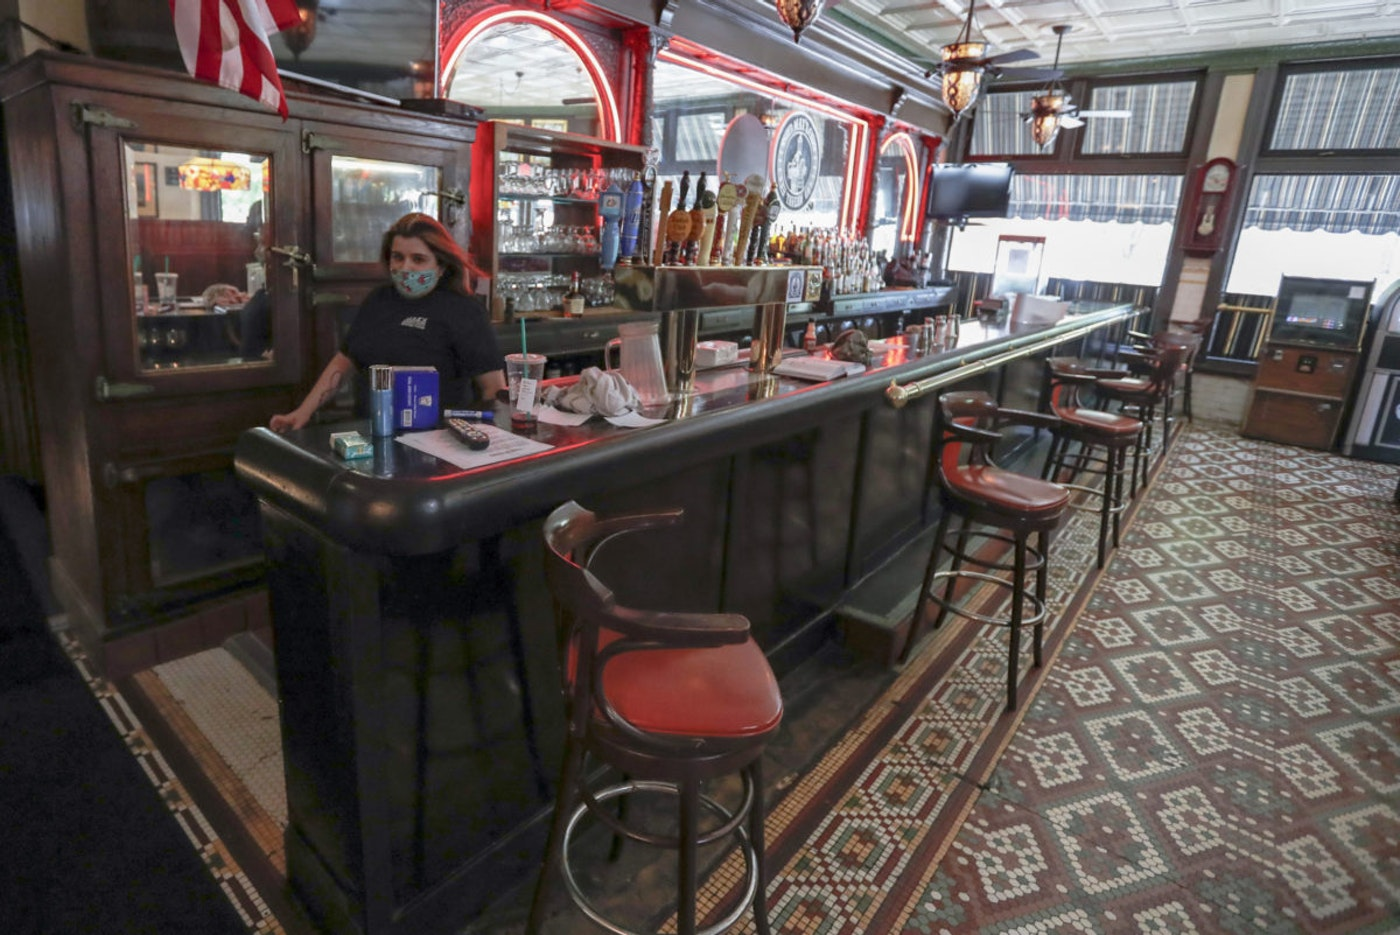 Bartender Sara Kennely walks behind the bar as preparations, like spacing out the barstools, are underway for patrons to dine inside, Thursday, June 4, 2020, at Max's Allegheny Tavern on Pittsburgh's North Side. (AP Photo/Keith Srakocic)